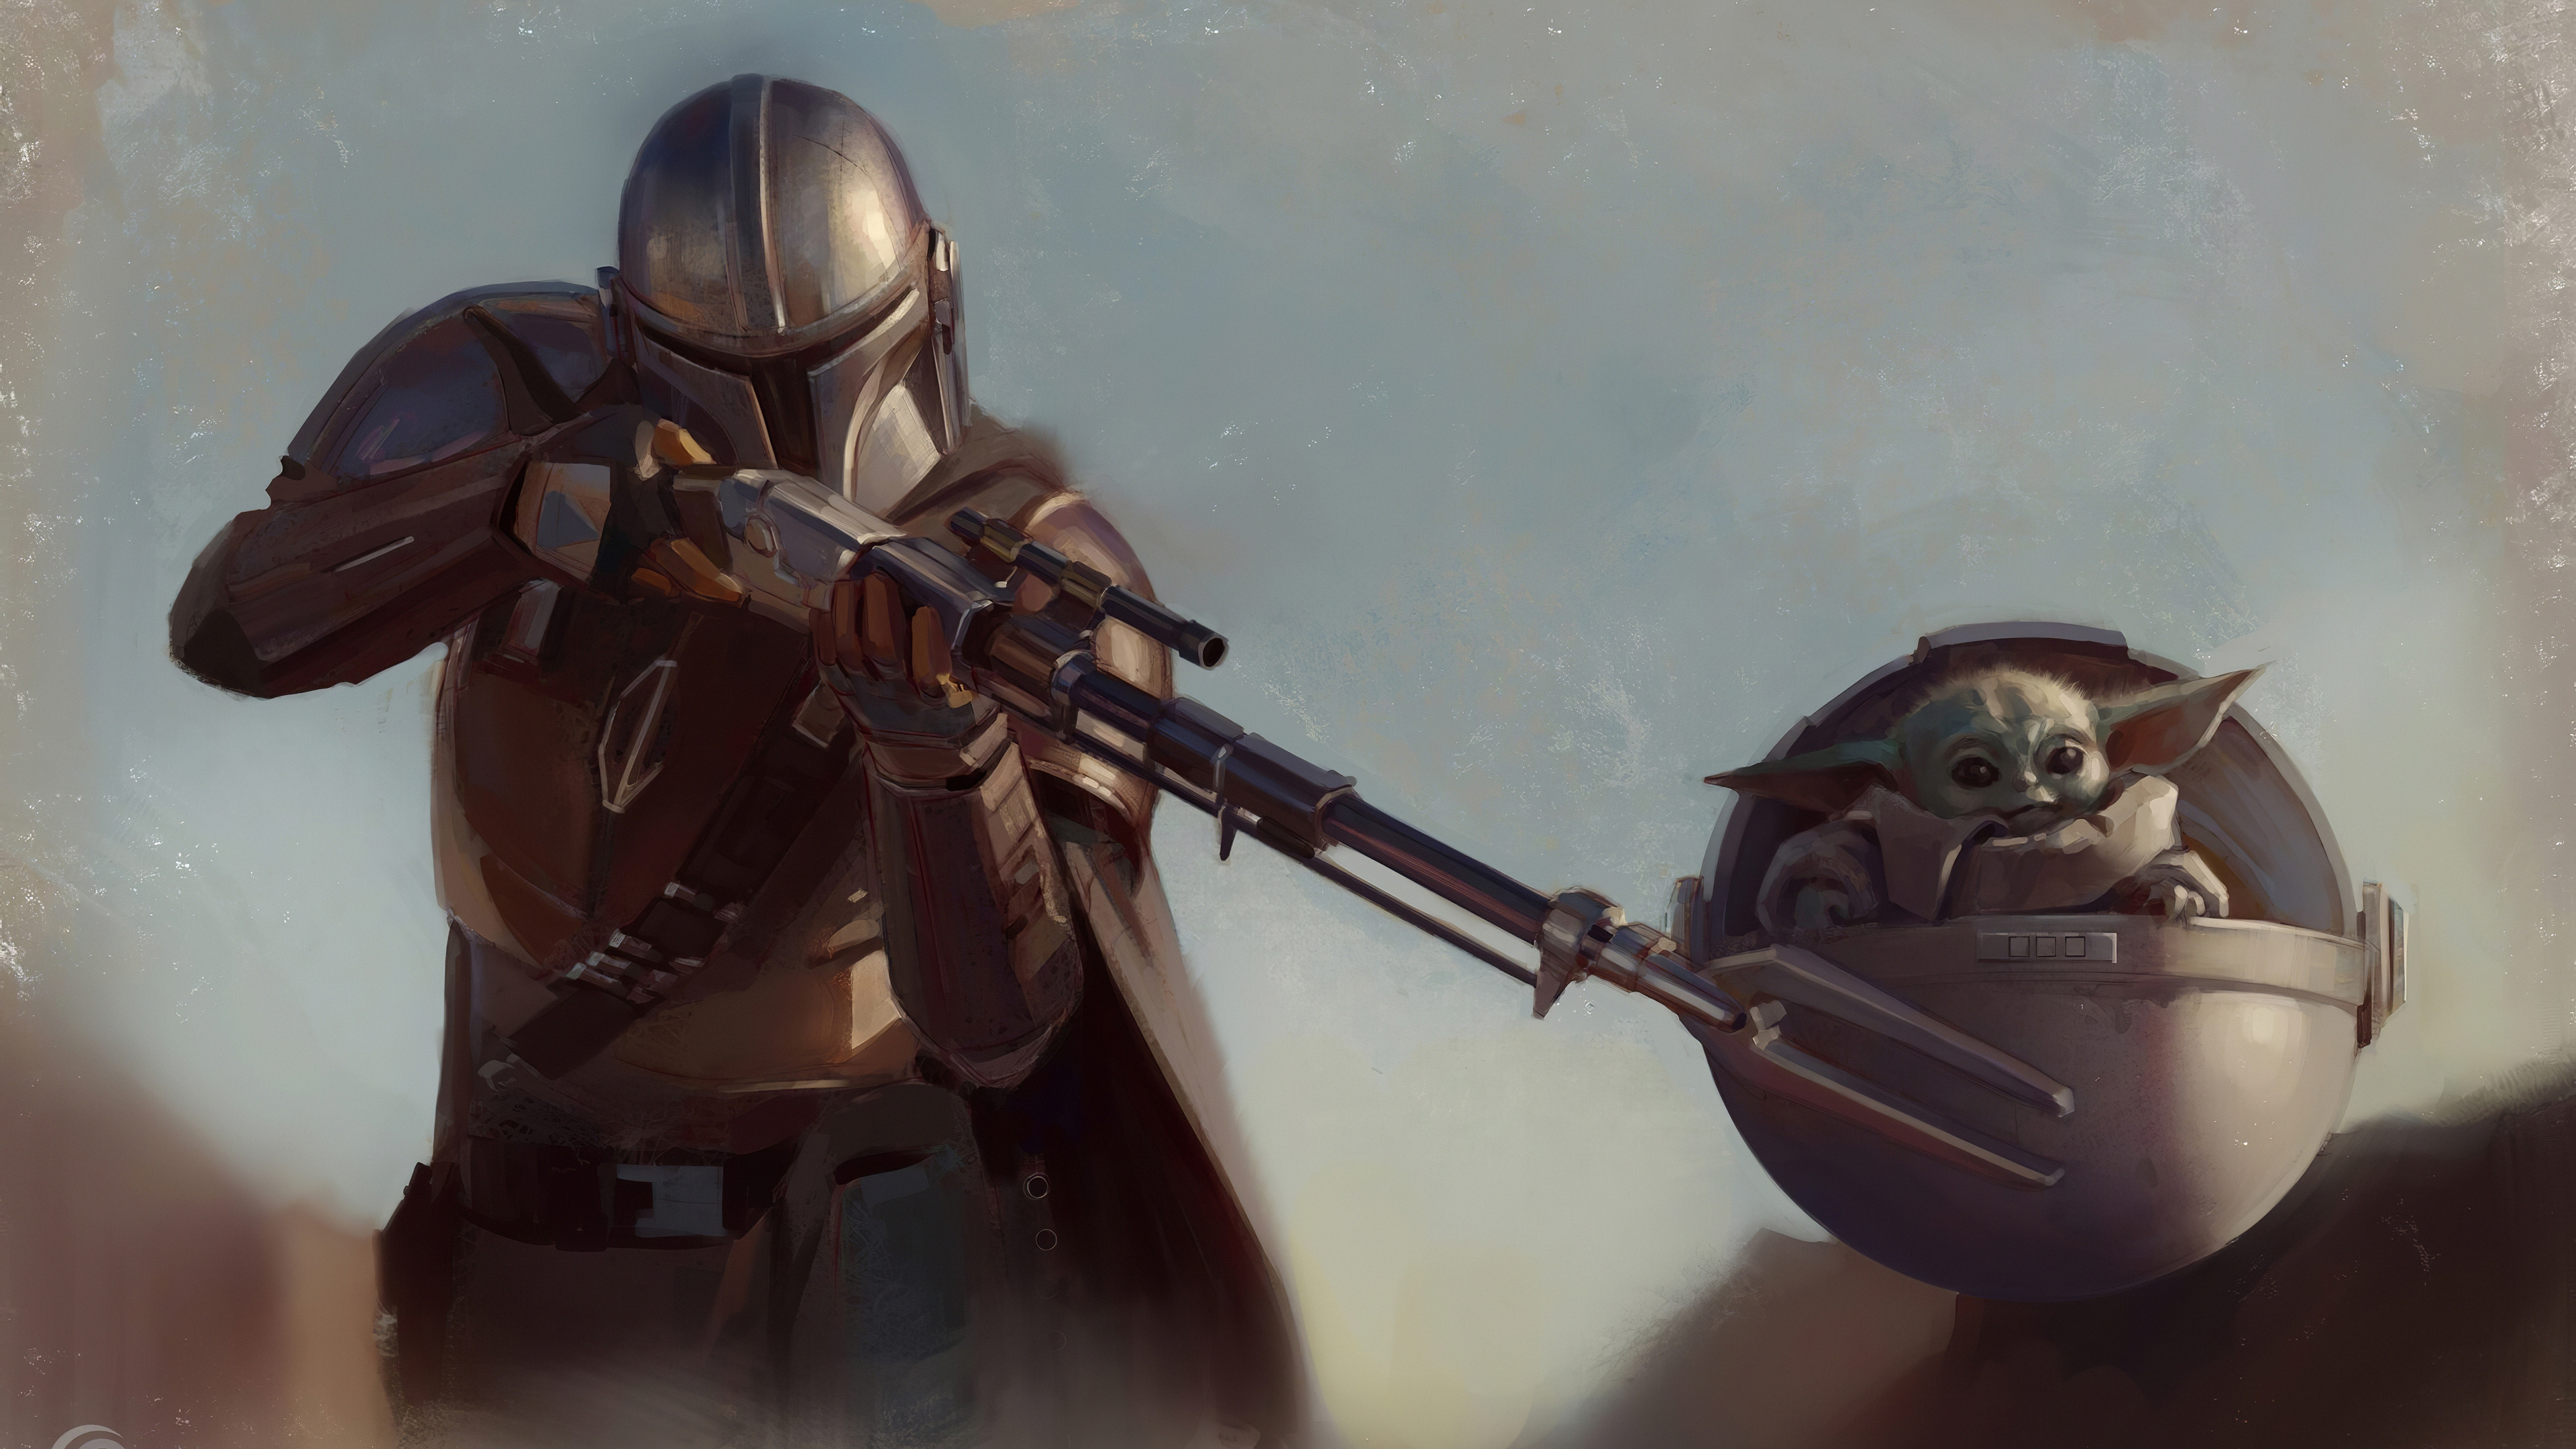 18 The Mandalorian Hd Wallpapers Backgrounds